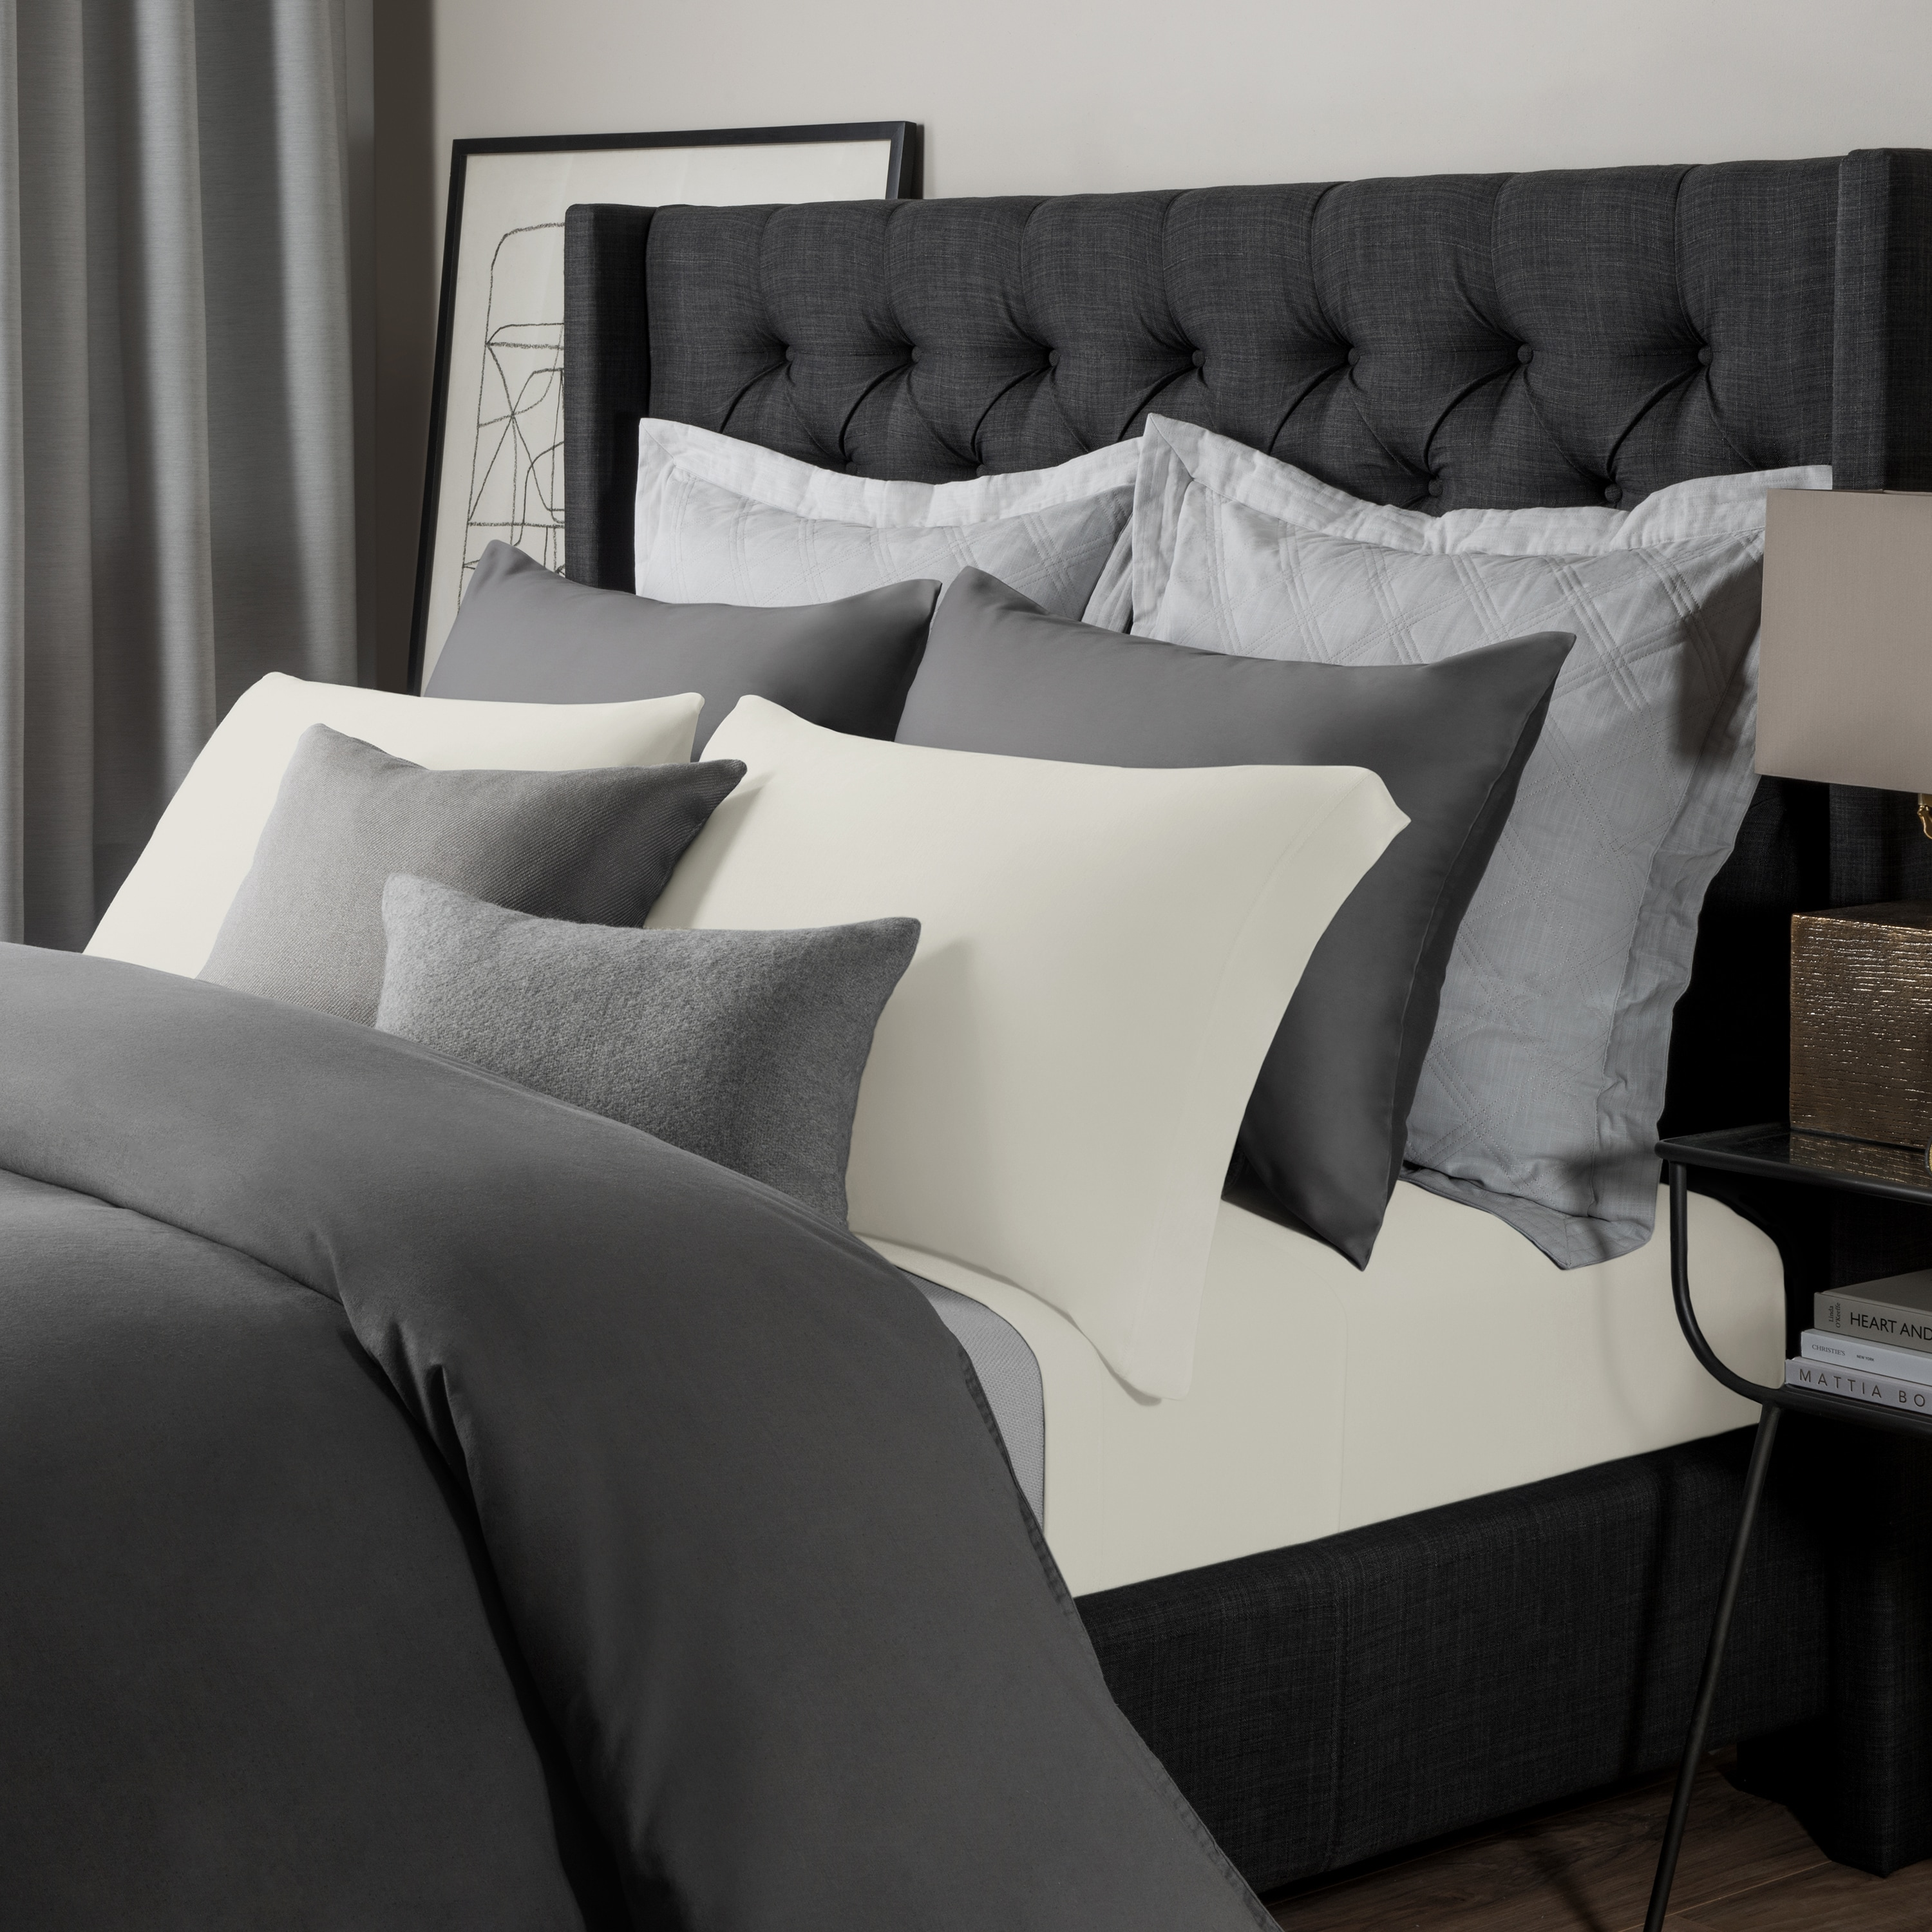 Shop Briarwood Home 150 GSM Modal Jersey Silky Bed Sheets   Free Shipping  Today   Overstock.com   12553891